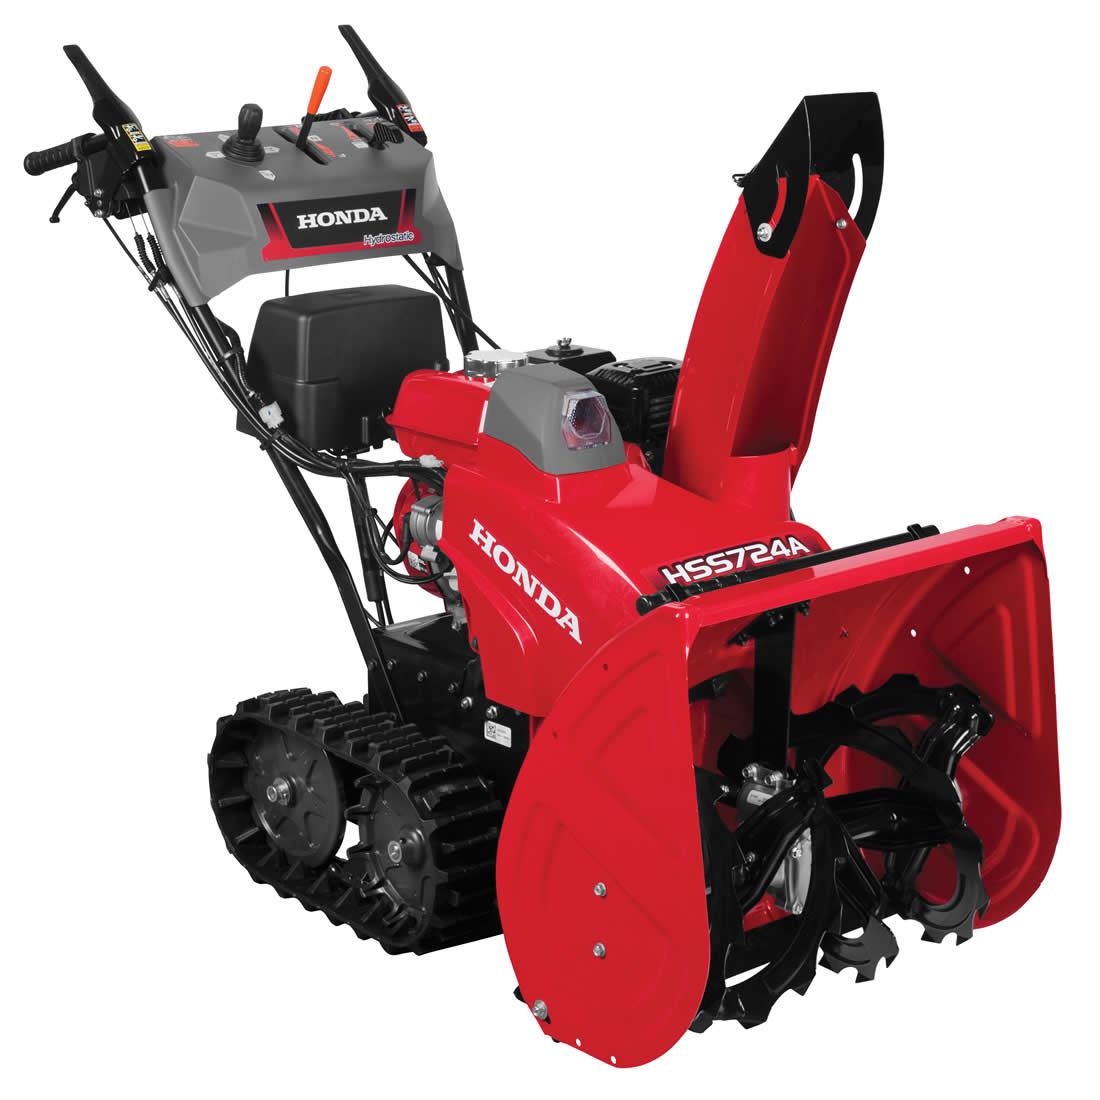 Picture of Honda HSS724AATD Snow Blower, Gas, 196 cc Engine Displacement, 4-Cycle OHV Engine, 2 -Stage, 49 ft Throw